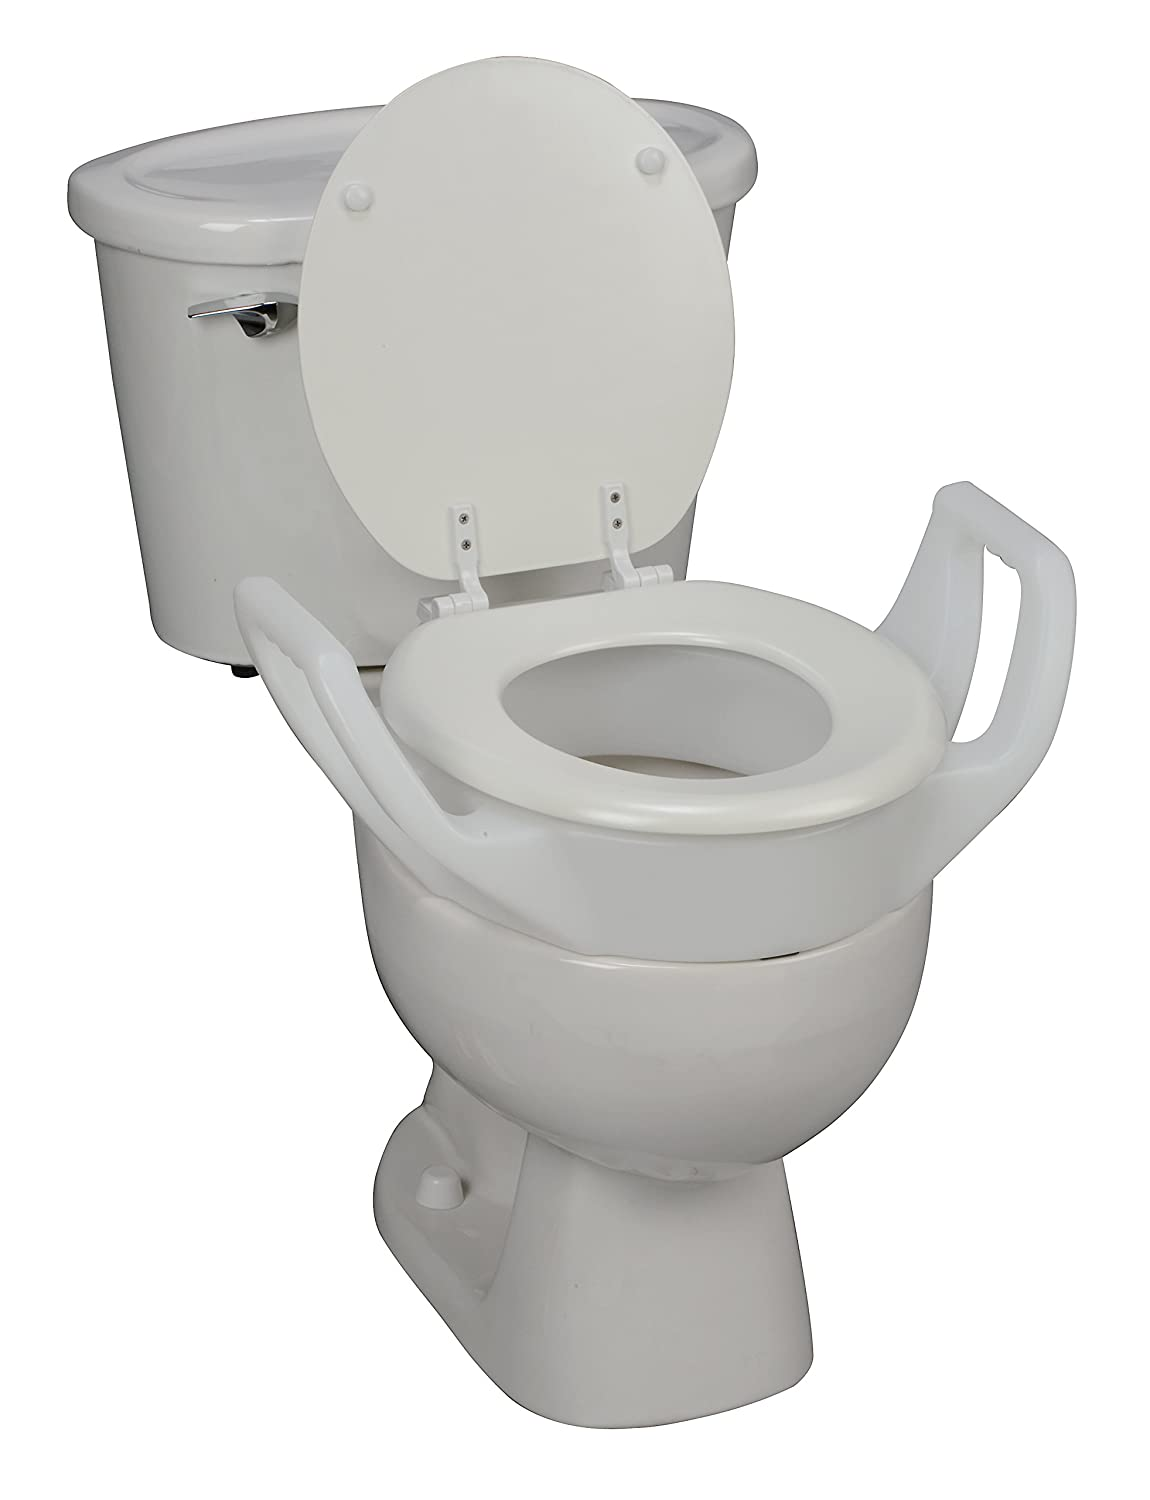 Amazon.com: DMI Raised Elevated Toilet Seat Riser with Arms and ...